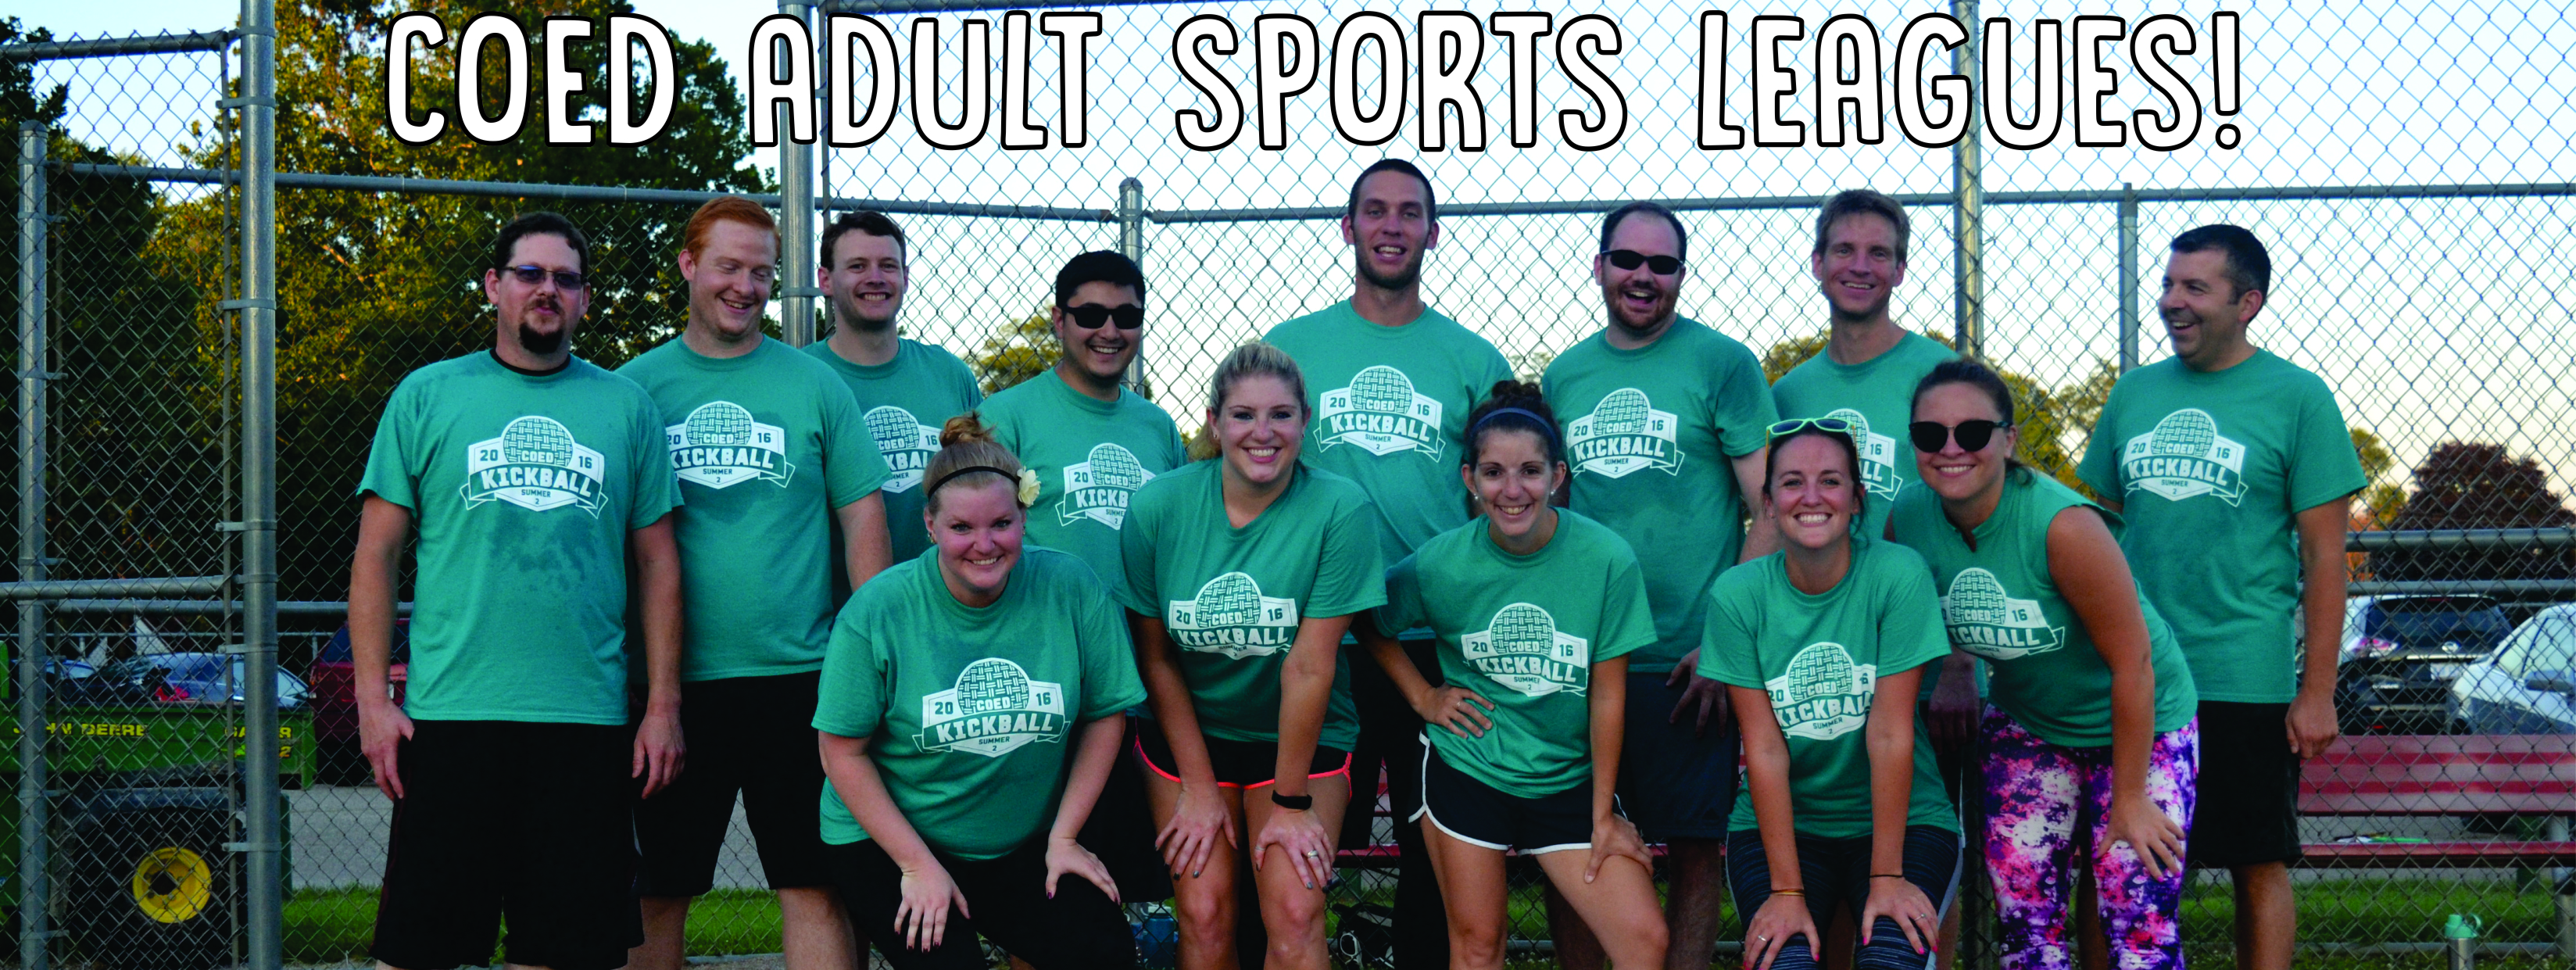 Adult Sports Leagues!